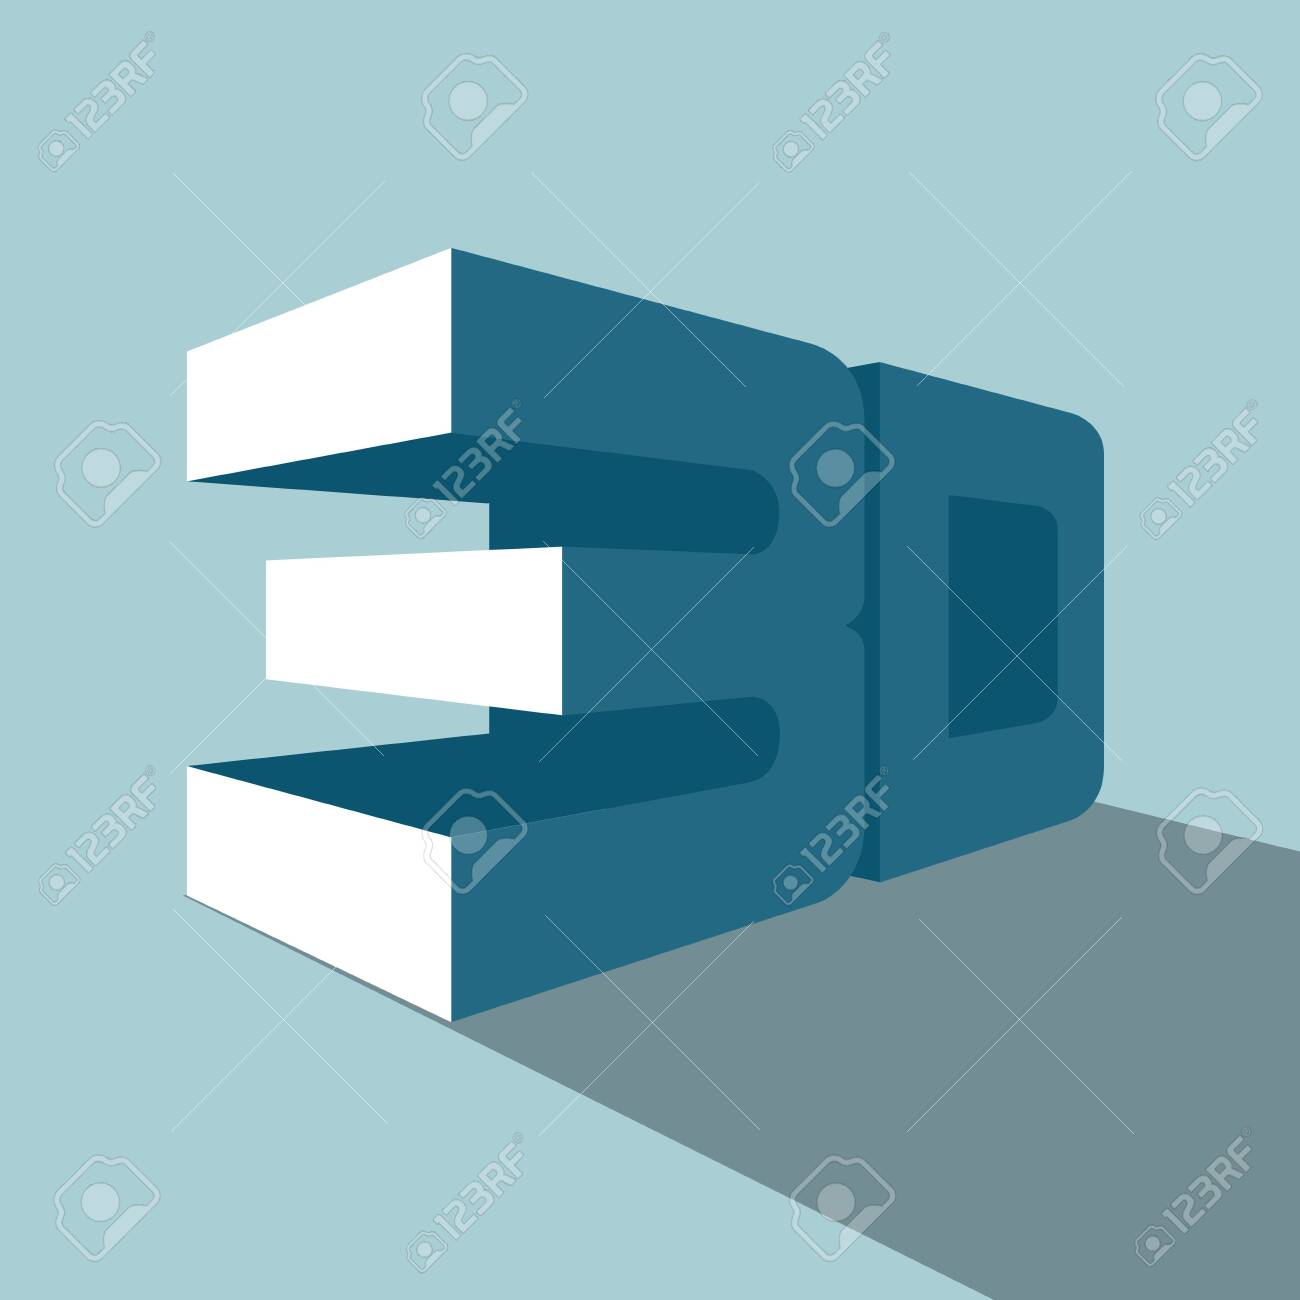 3D symbol. Isolated on blue background. - 128104911